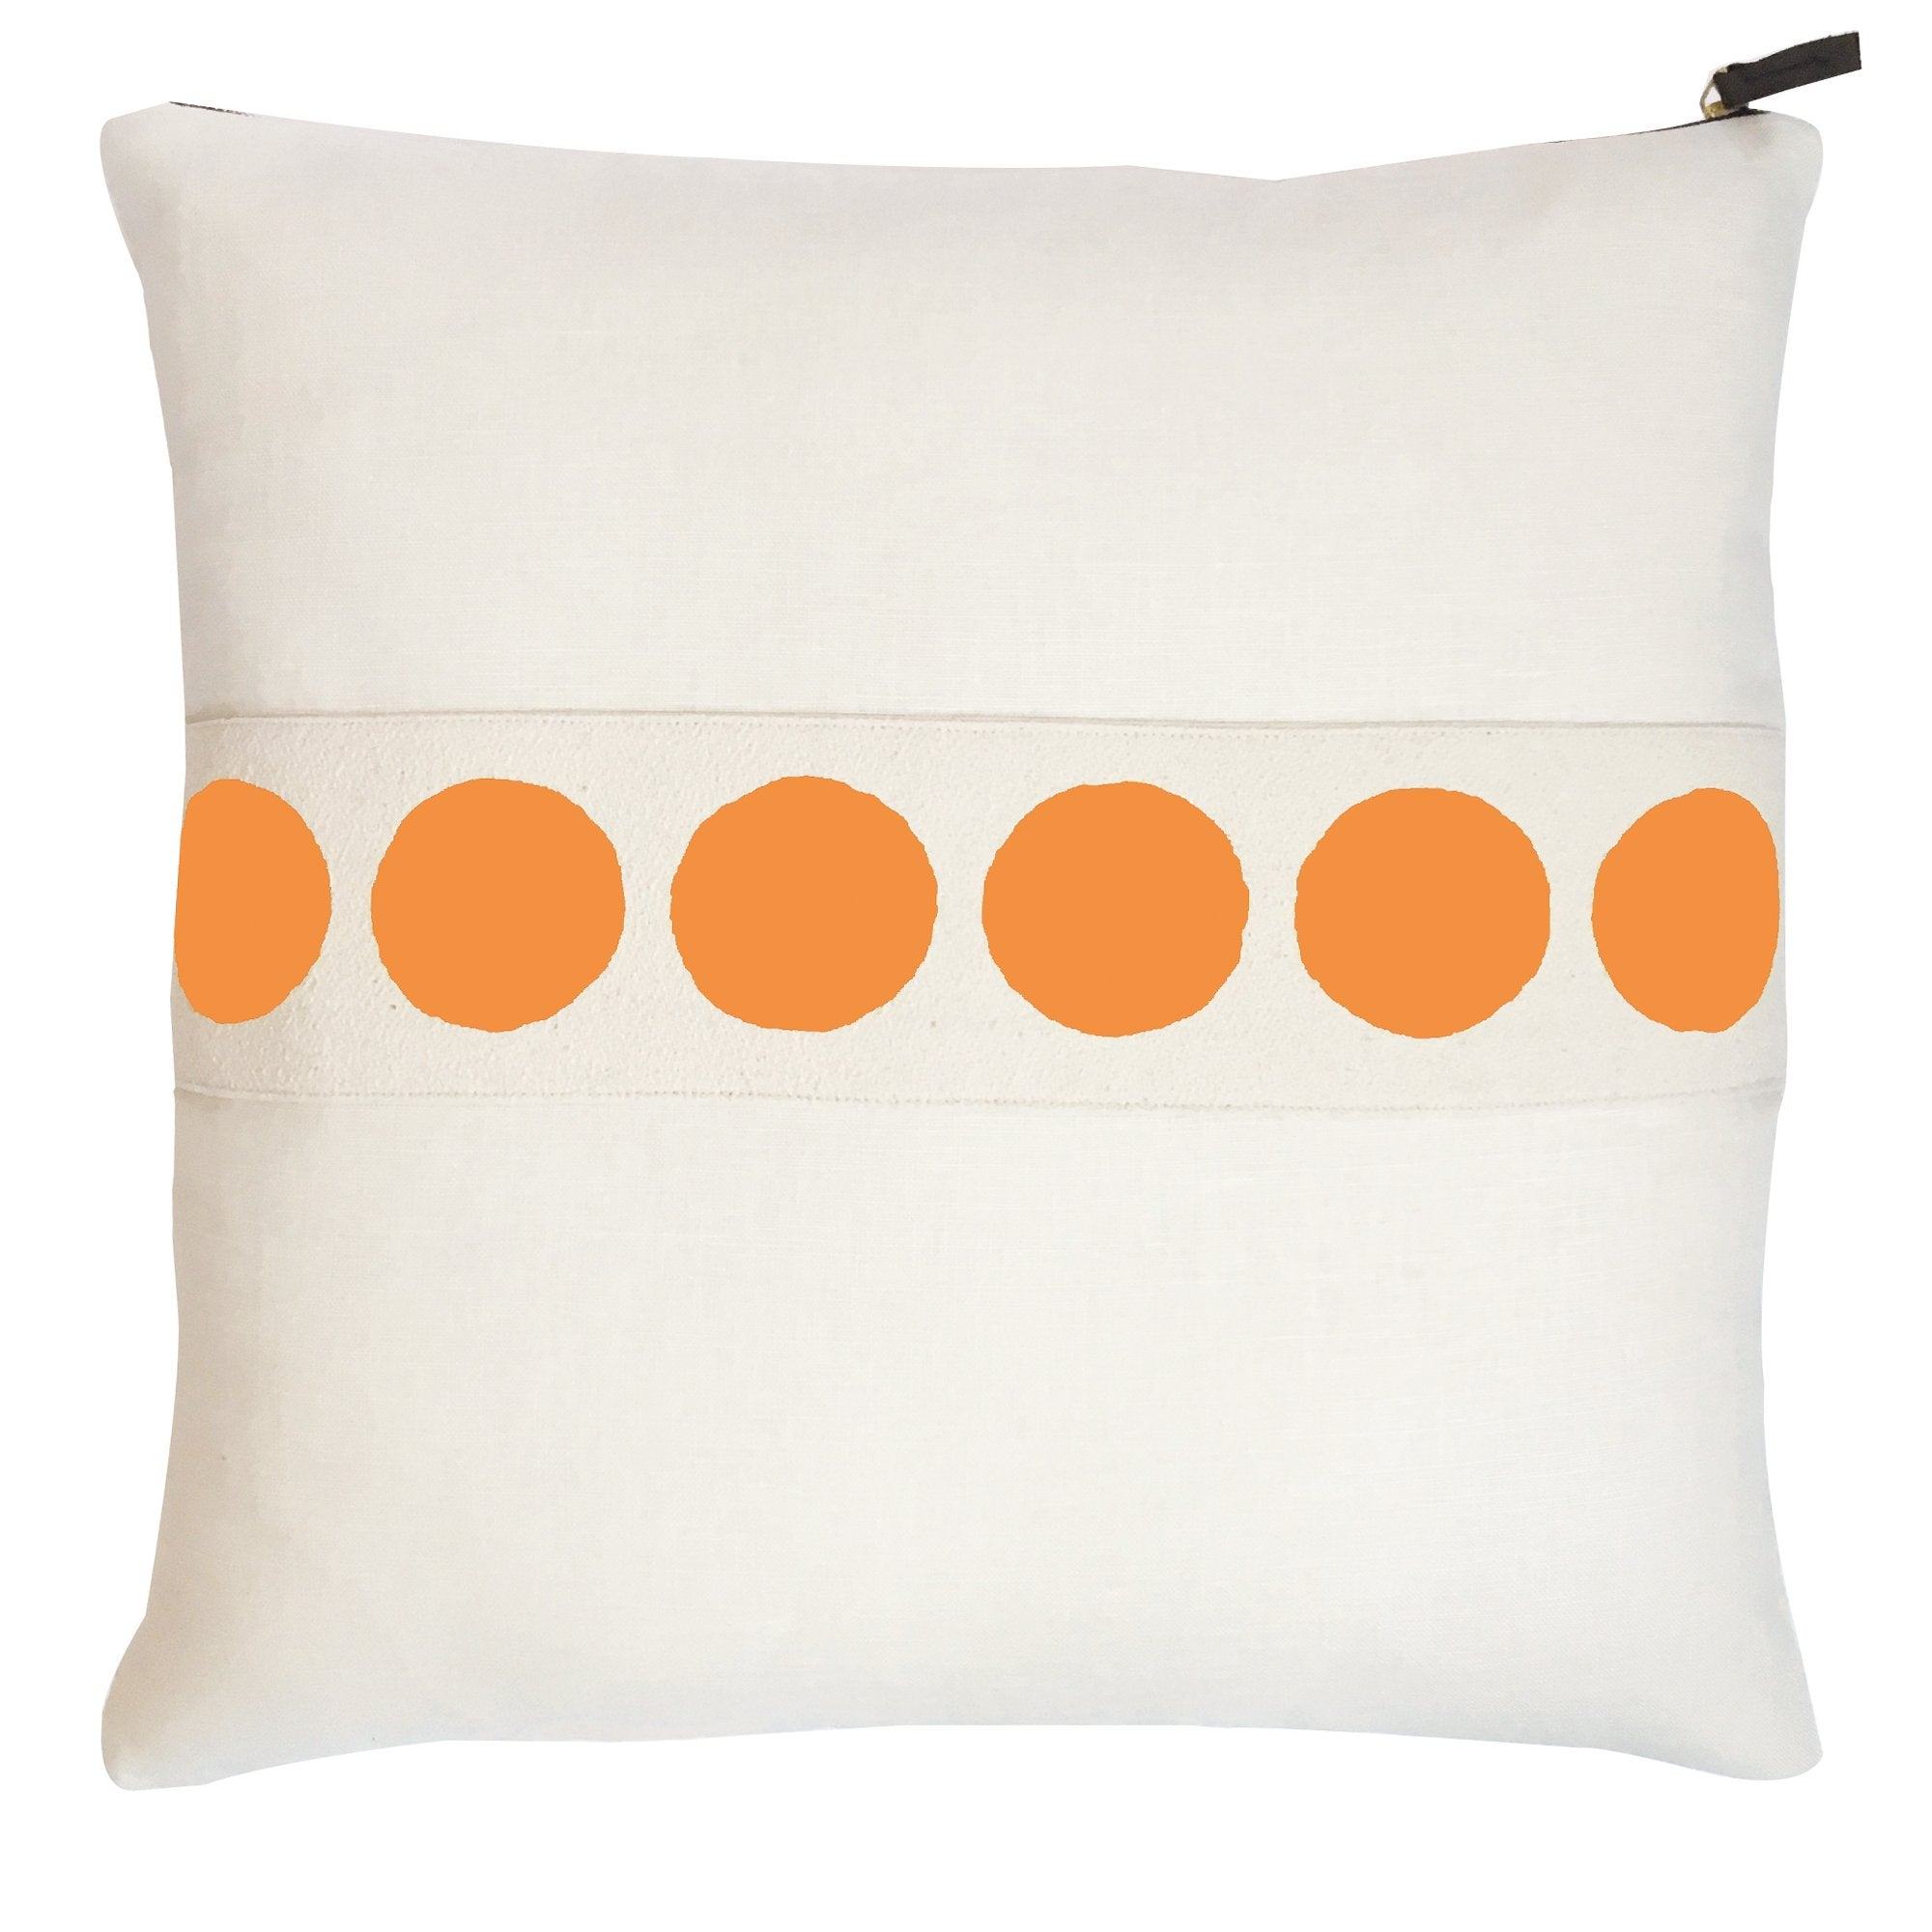 CIRCLE BAND OYSTER LINEN PILLOW COVER IN MANGO